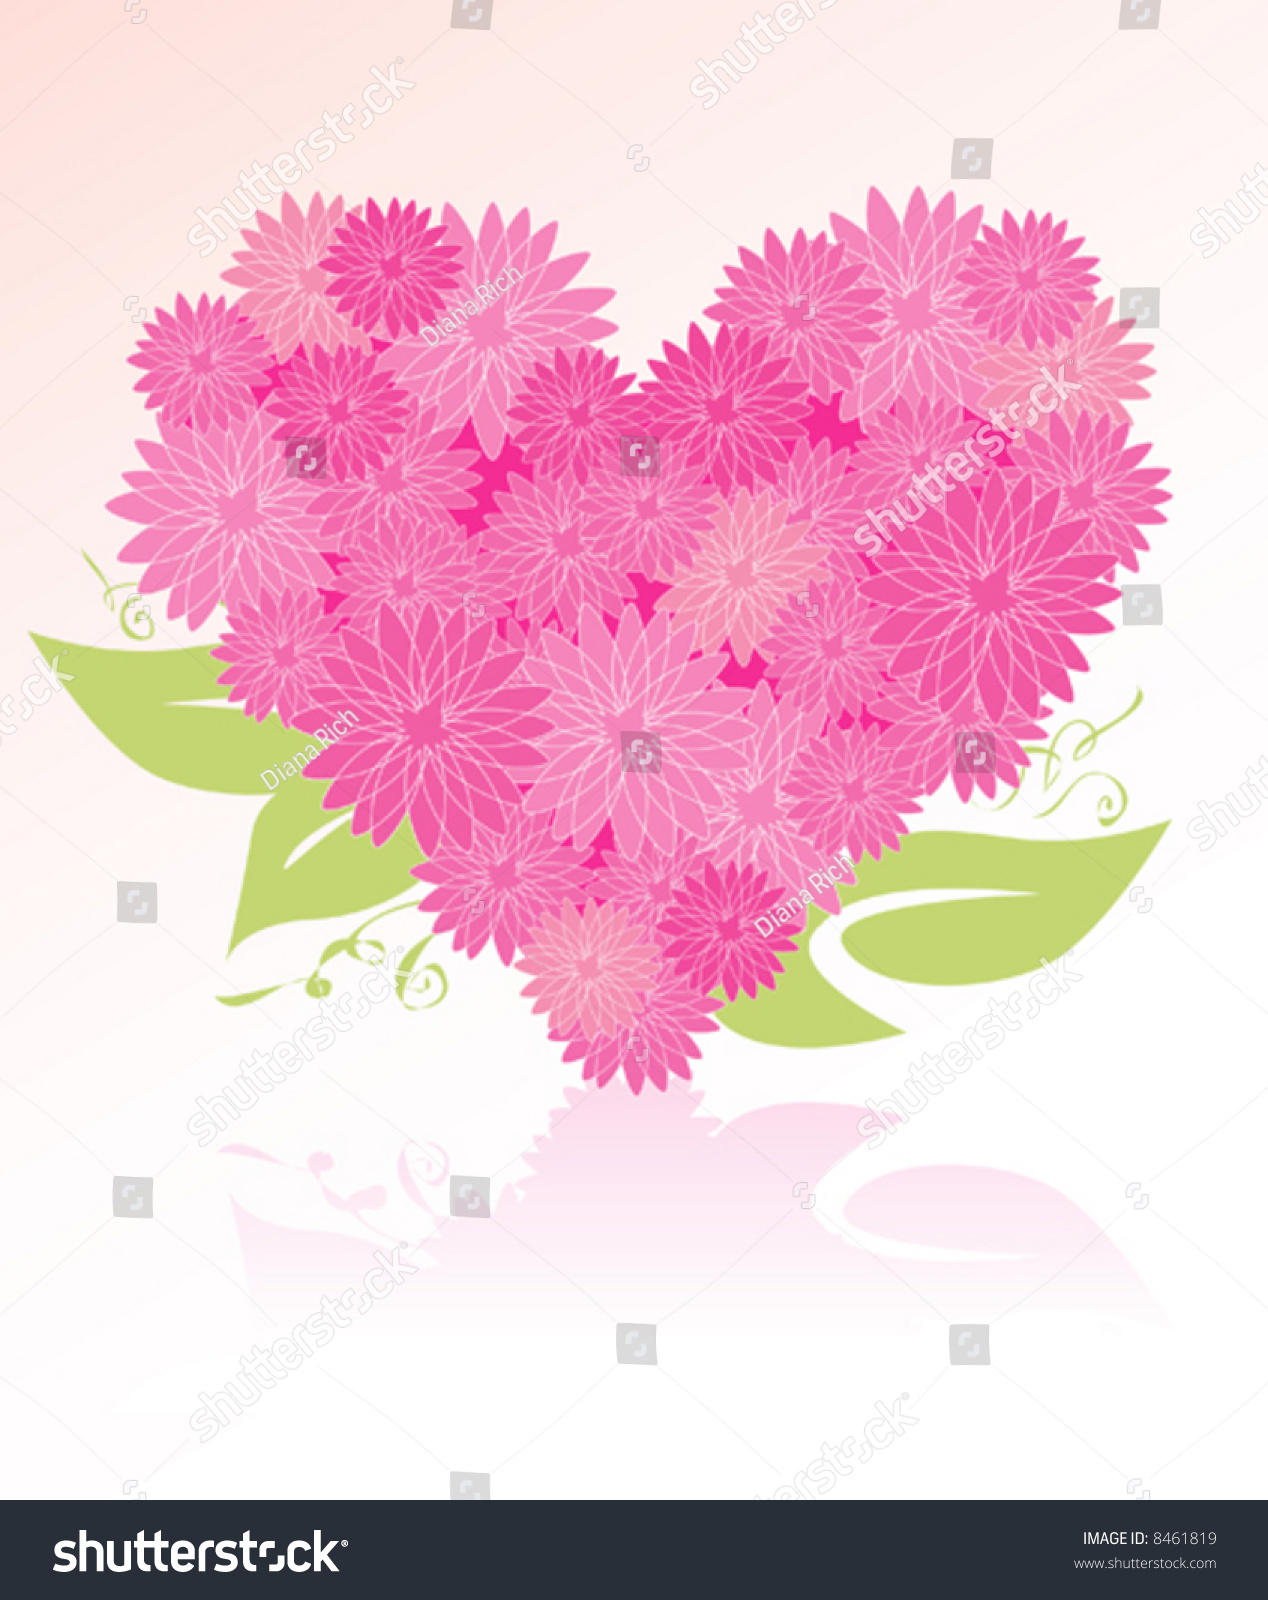 Heartshaped Flower Bouquet Easyedit Layered File Stock Vector (2018 ...